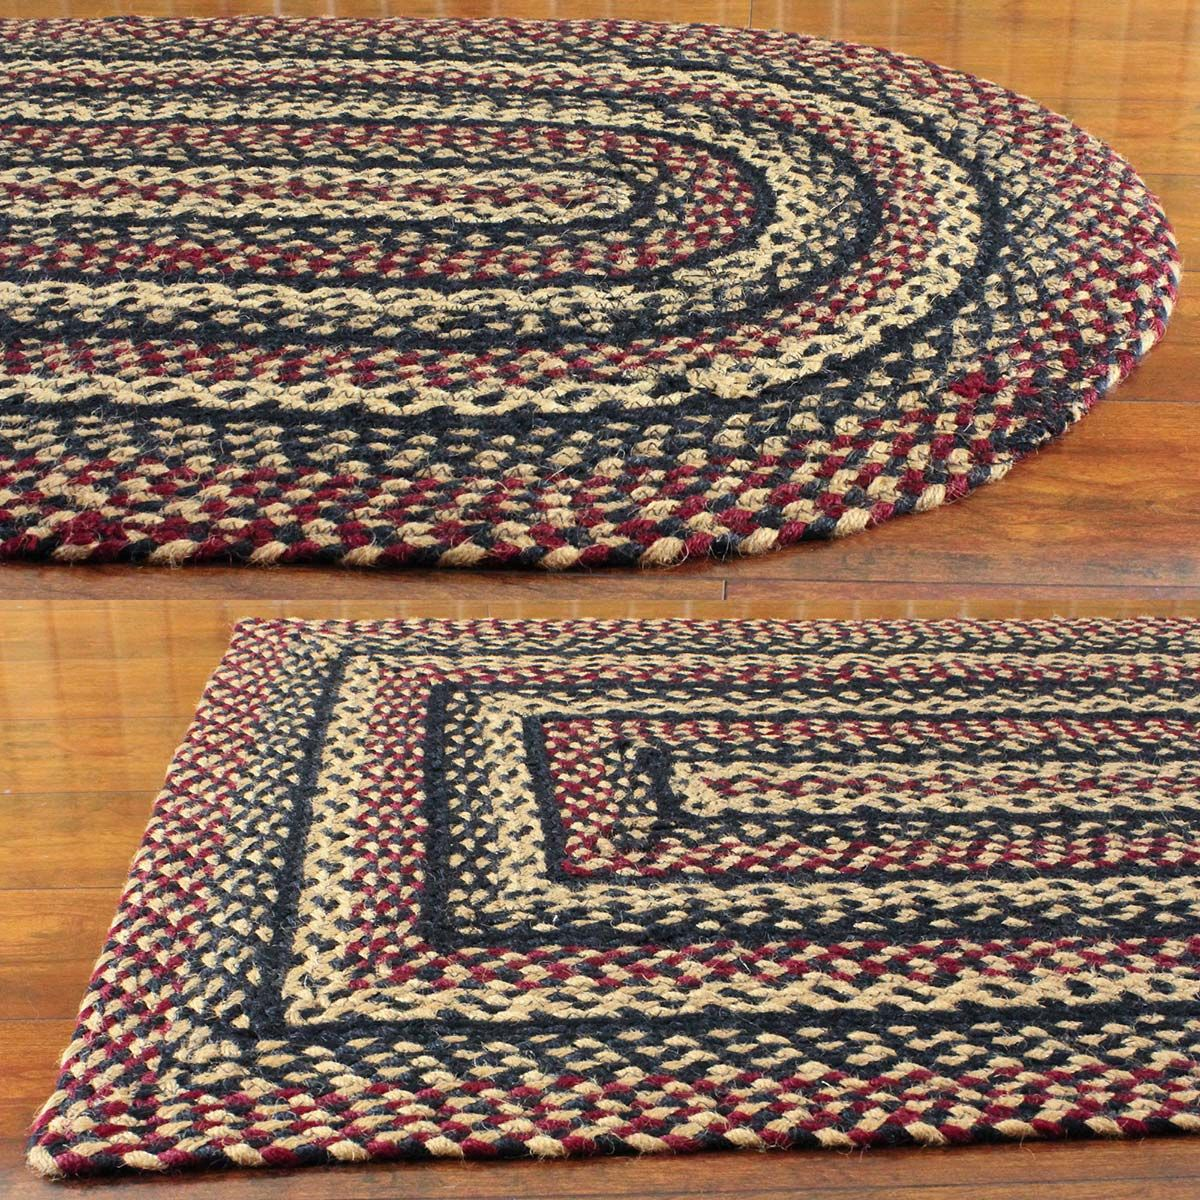 Check out the deal on Blackberry Jute Braided Rugs at Primitive Home Decors